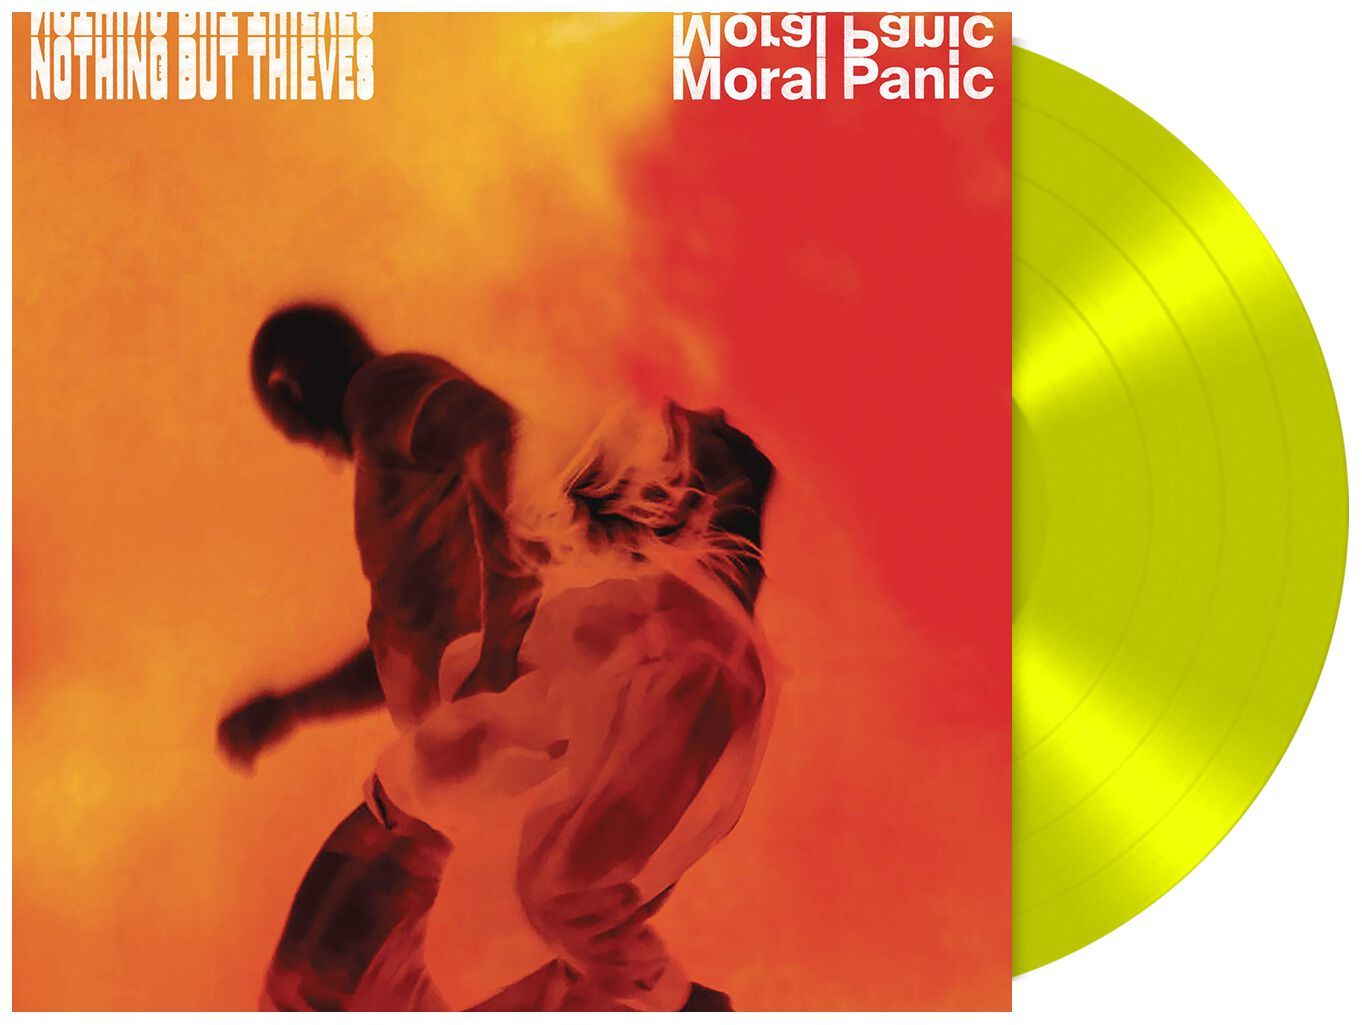 Nothing But Thieves - Moral Panic Limited Edition Neon Yellow Vinyl